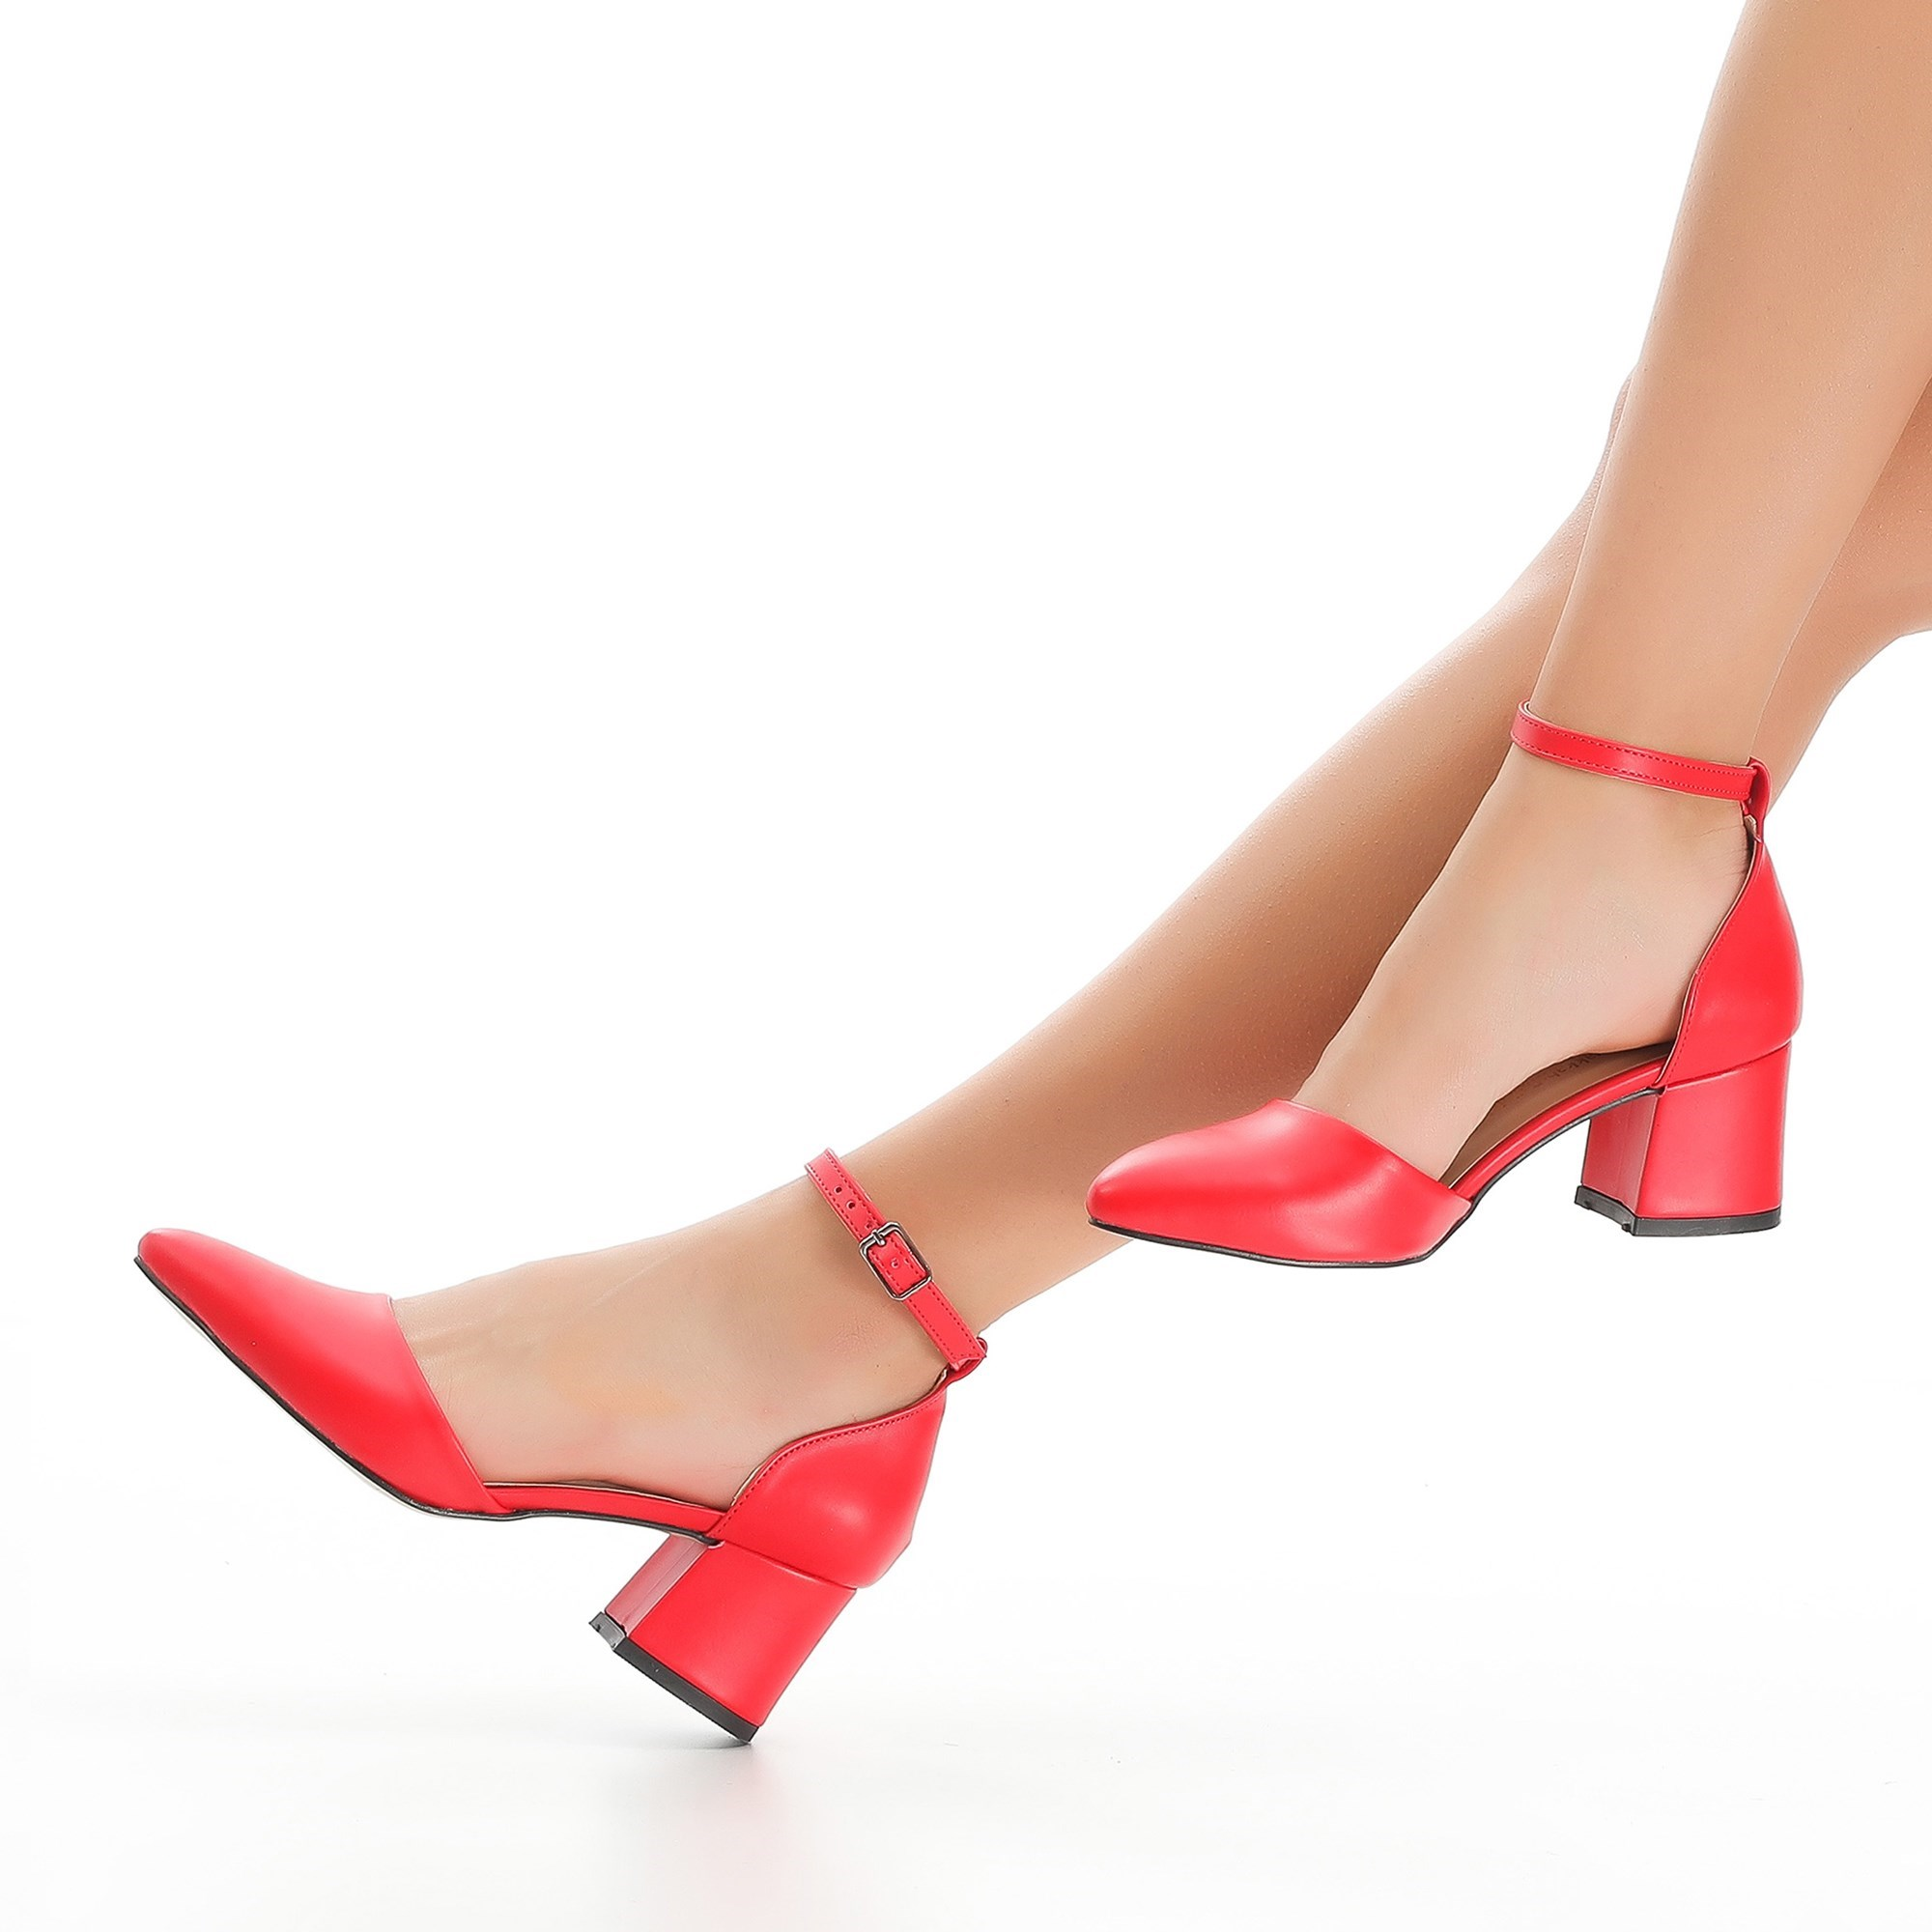 Mst-033 Red Leather Women's Elegant Pointed Toe High Heels Wedding Shoes Crystal Clear Heels Slingback 35-40